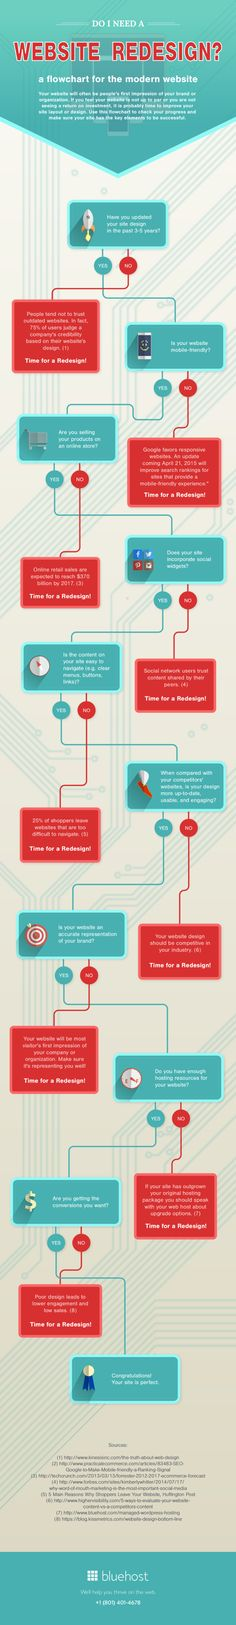 40 Best Sitemap Inspiration Images Web Design Flow Chart Information Architecture,Small Bedroom Designs India Low Cost